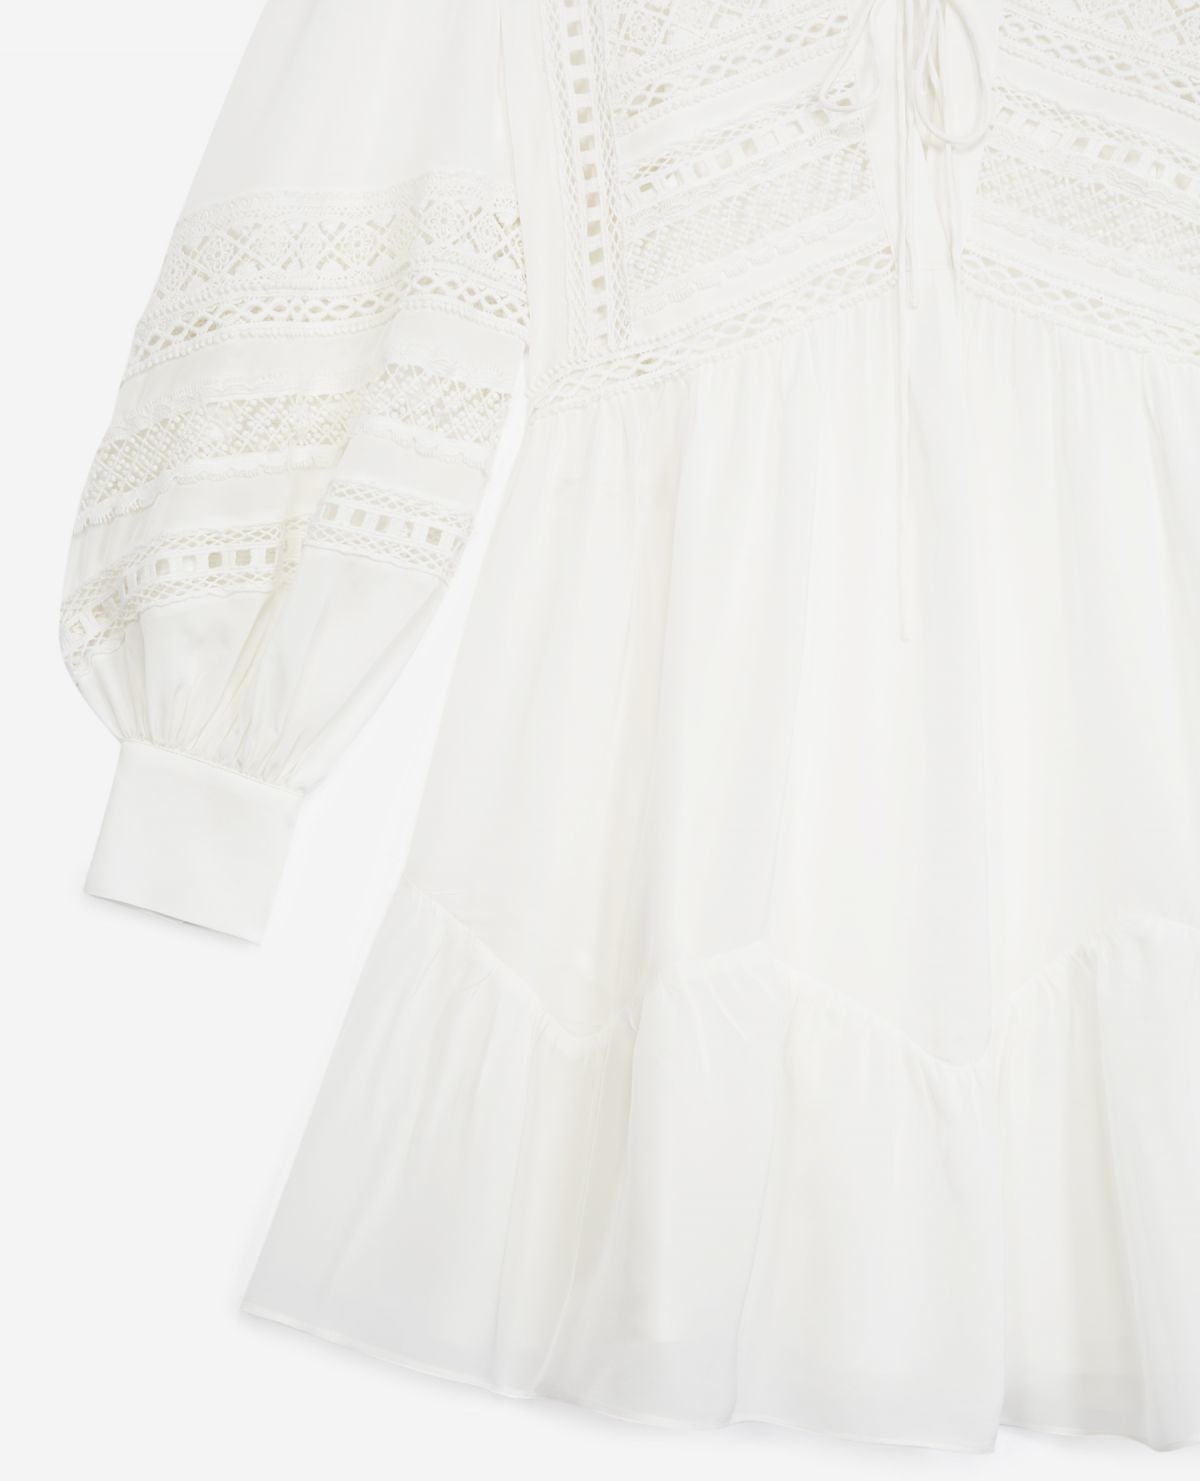 THE KOOPLES robe courte blanche-4